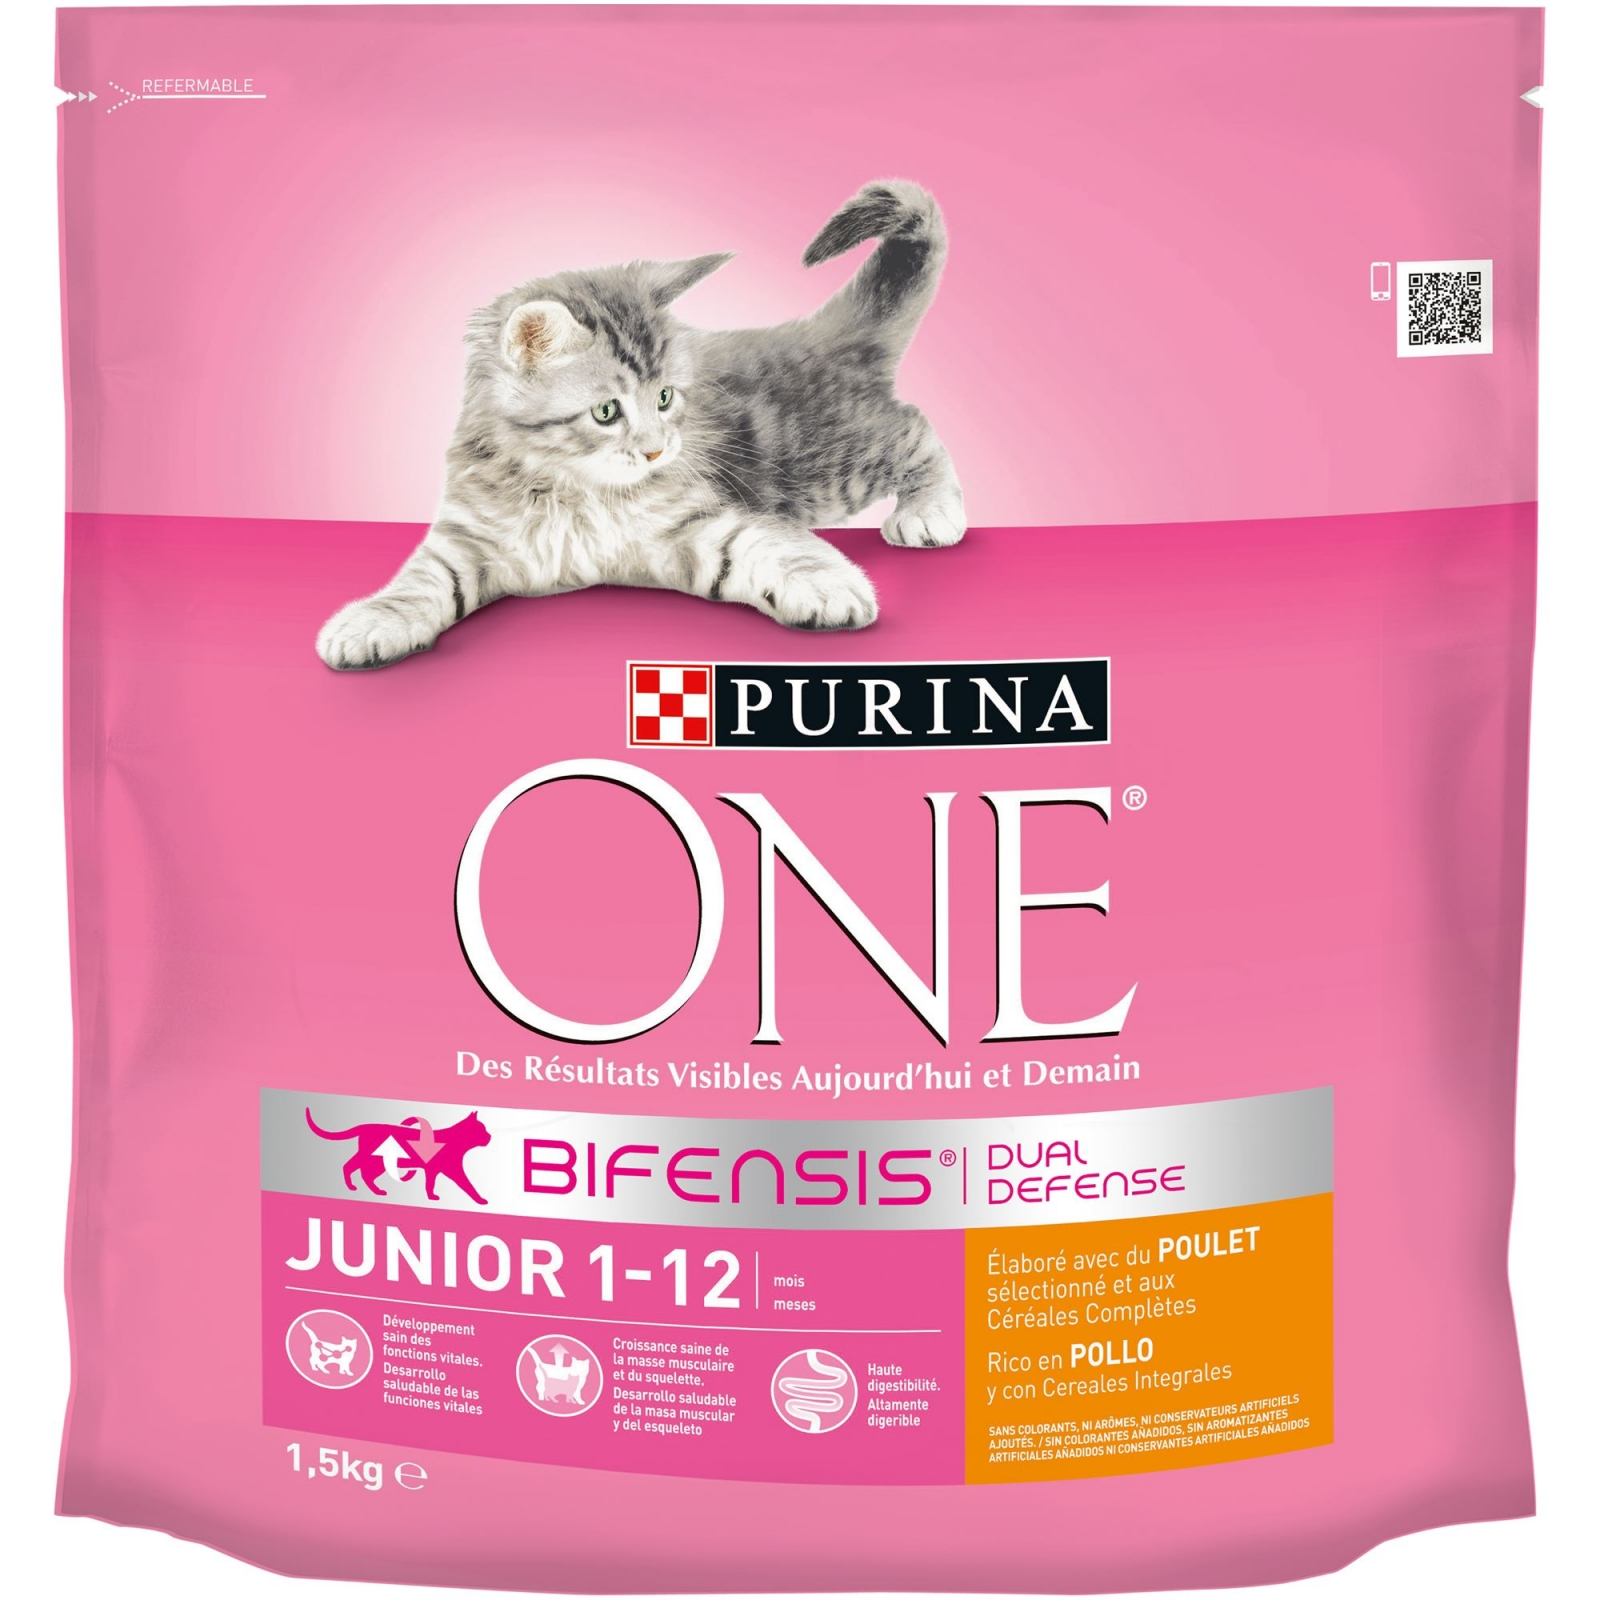 Purina ONE Bifensis Pienso para Gato Junior Pollo y Cereales 1,5Kg